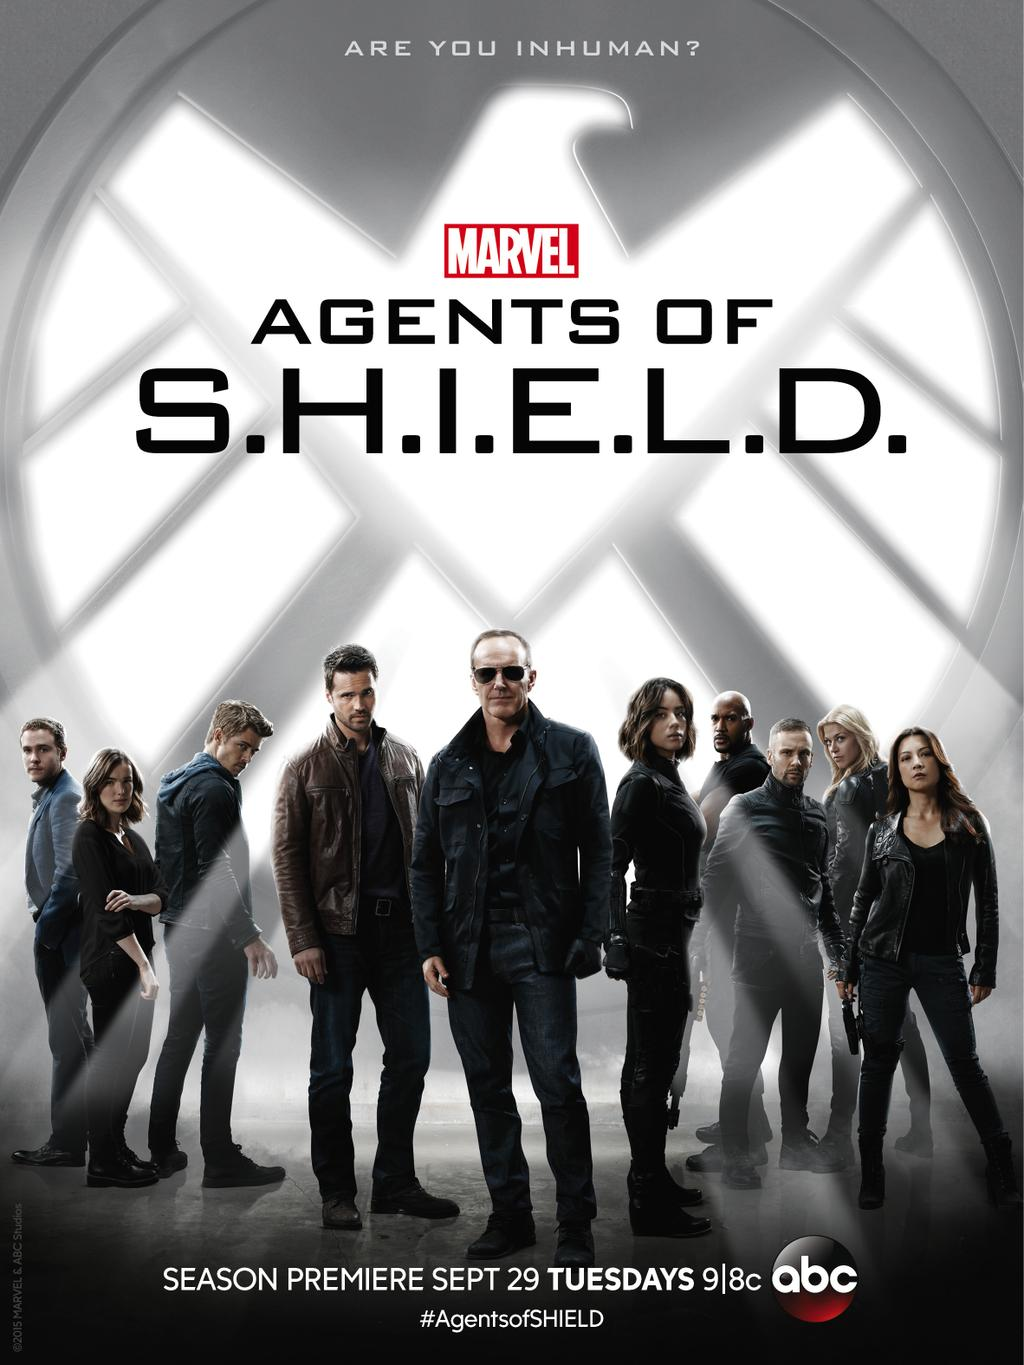 Marvel's Agents of S.H.I.E.L.D.-Poster 3.jpg